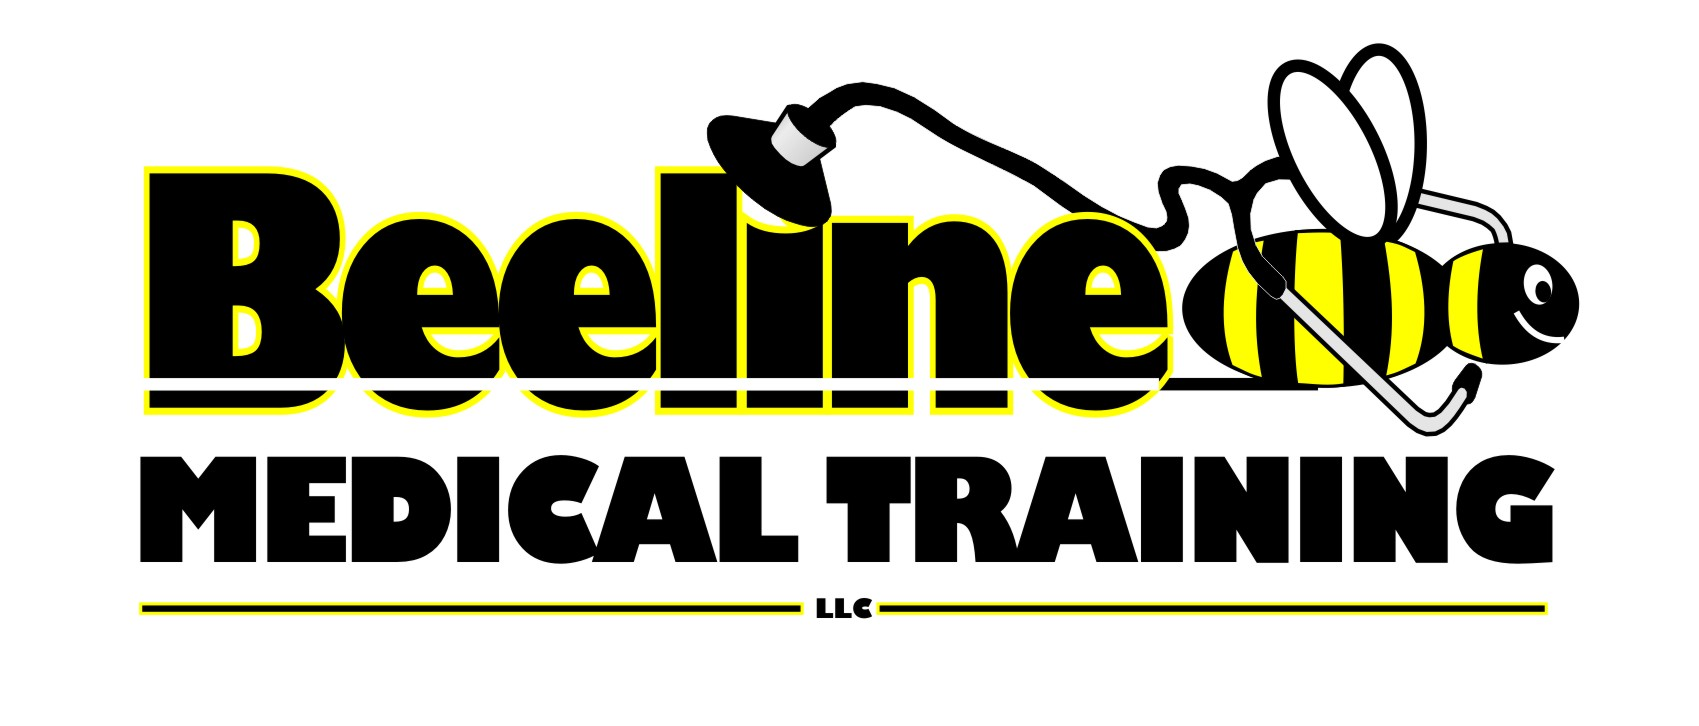 Beeline Medical Training